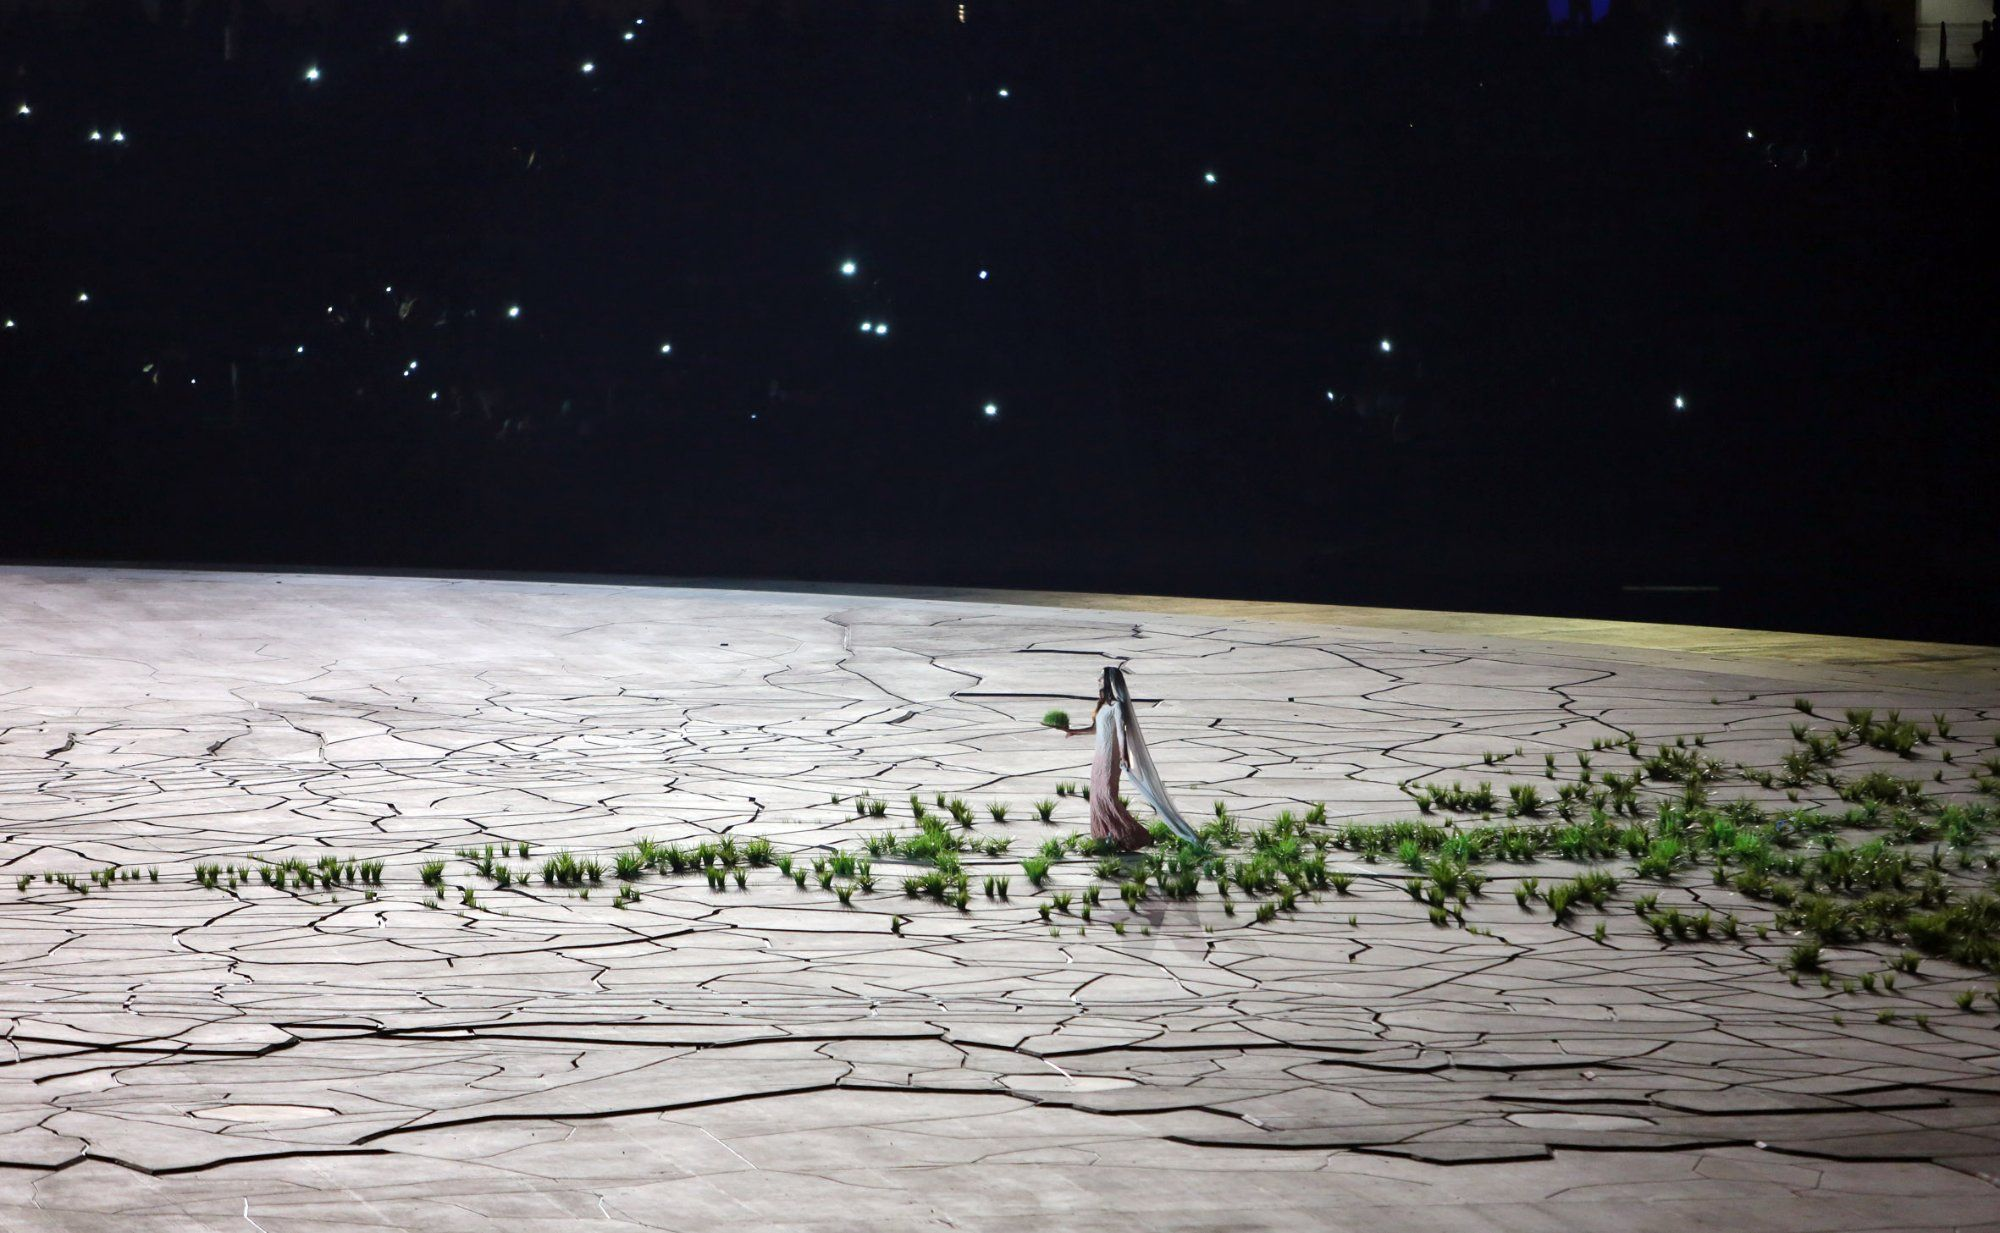 Grass Path, created by NEWSUBSTANCE for the 2015 European Games Opening Ceremony held in Baku,